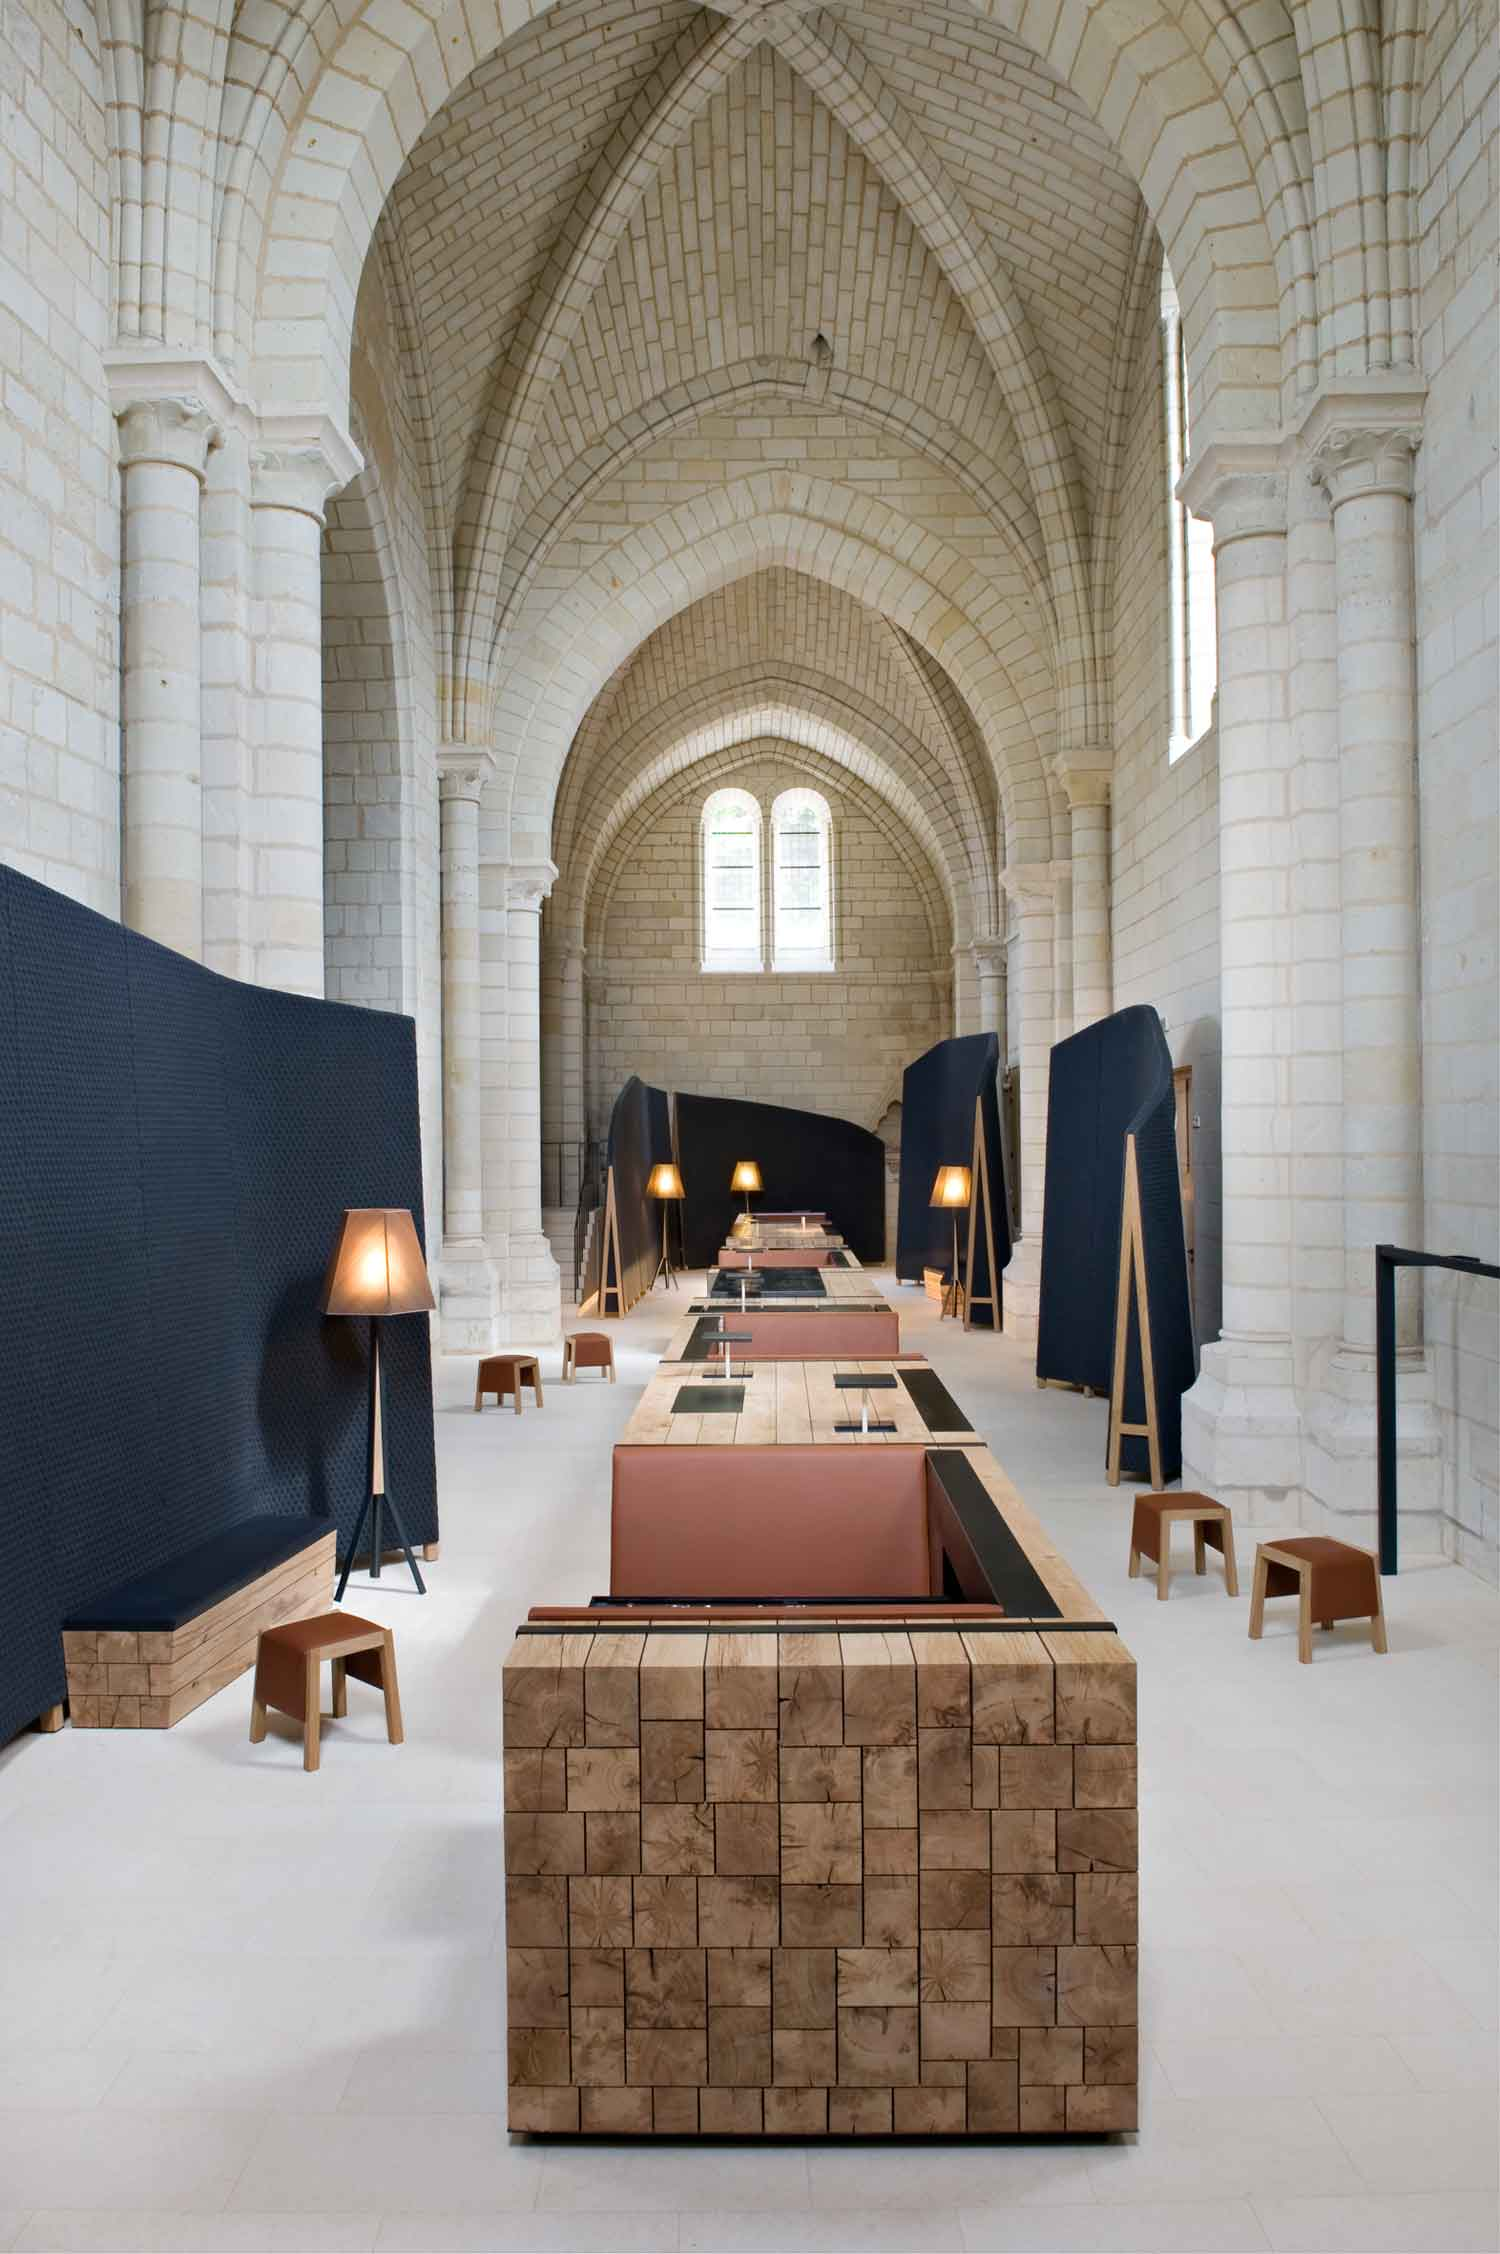 Abbaye de Fontevraud by Jouin Manku in Anjou, France | Yellowtrace